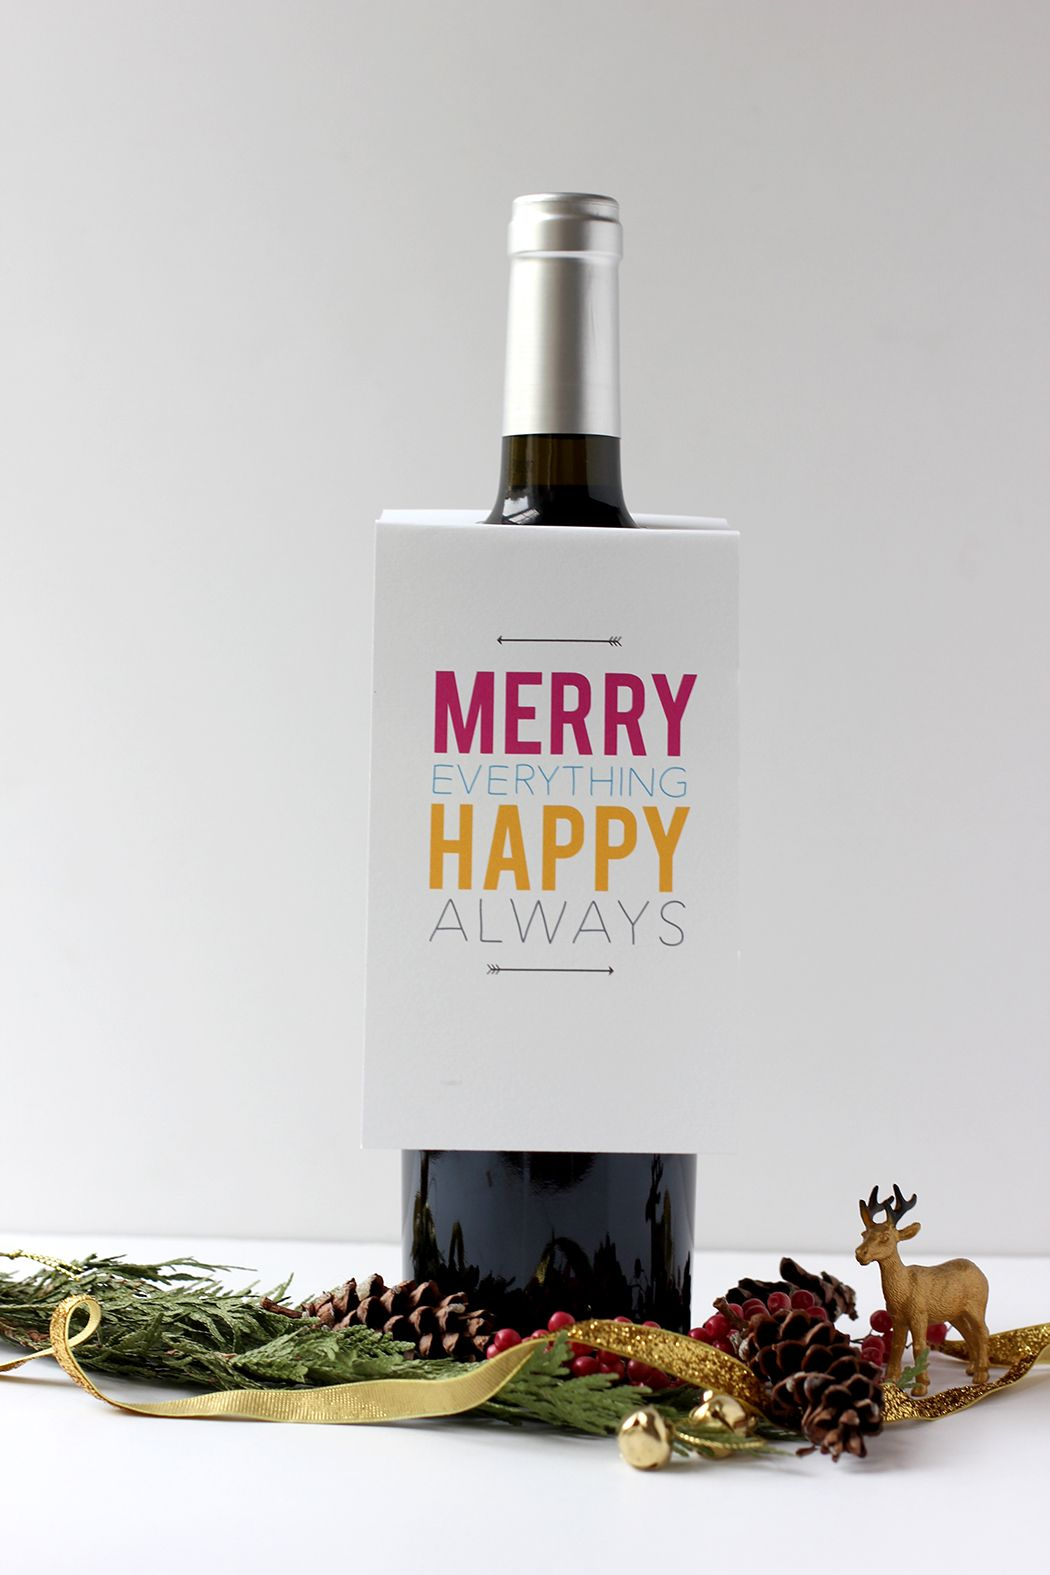 Image result for fREE IMAGES OF CHRISTMAS wine